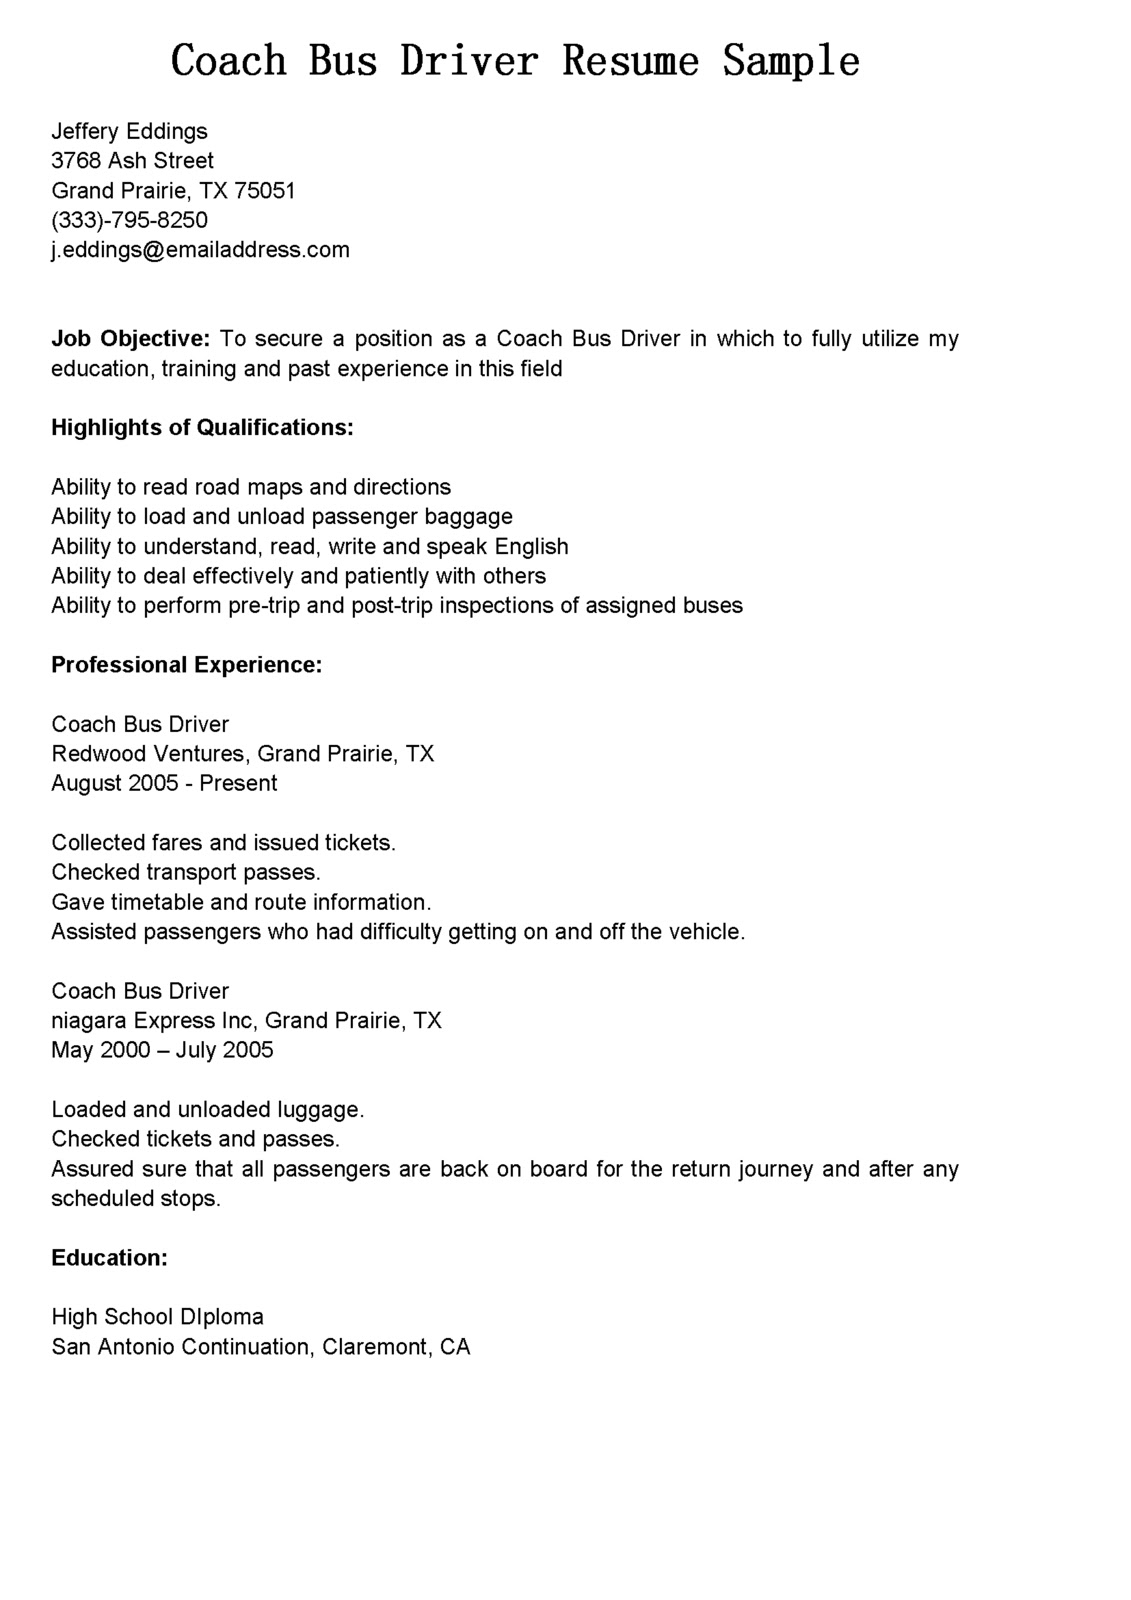 resume sample for bus driver driver resumes coach bus driver resume sample